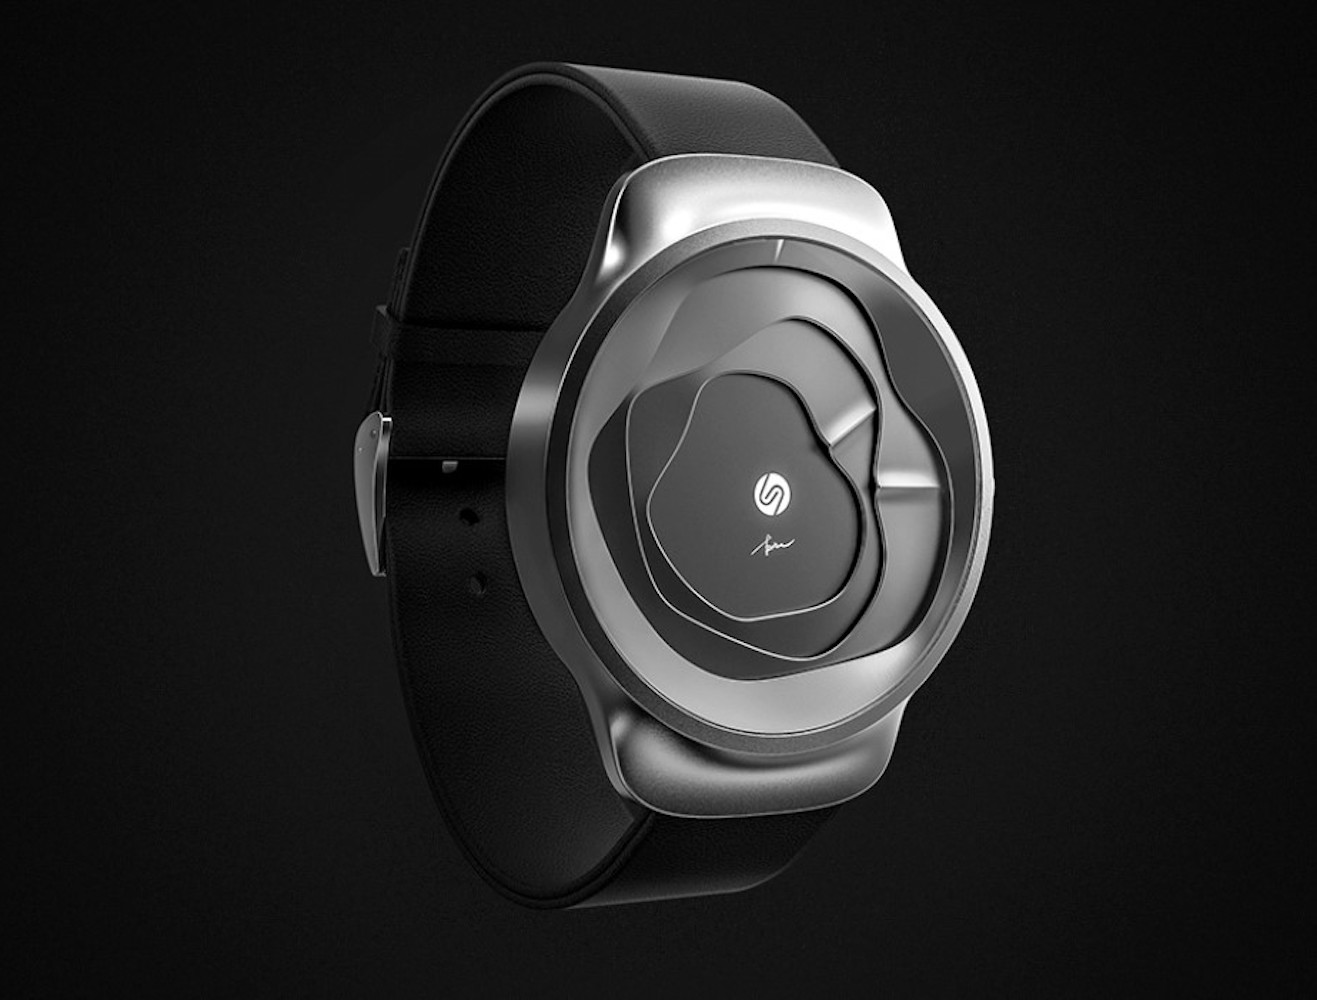 Gemic Undulating 3D Watch makes telling the time fun